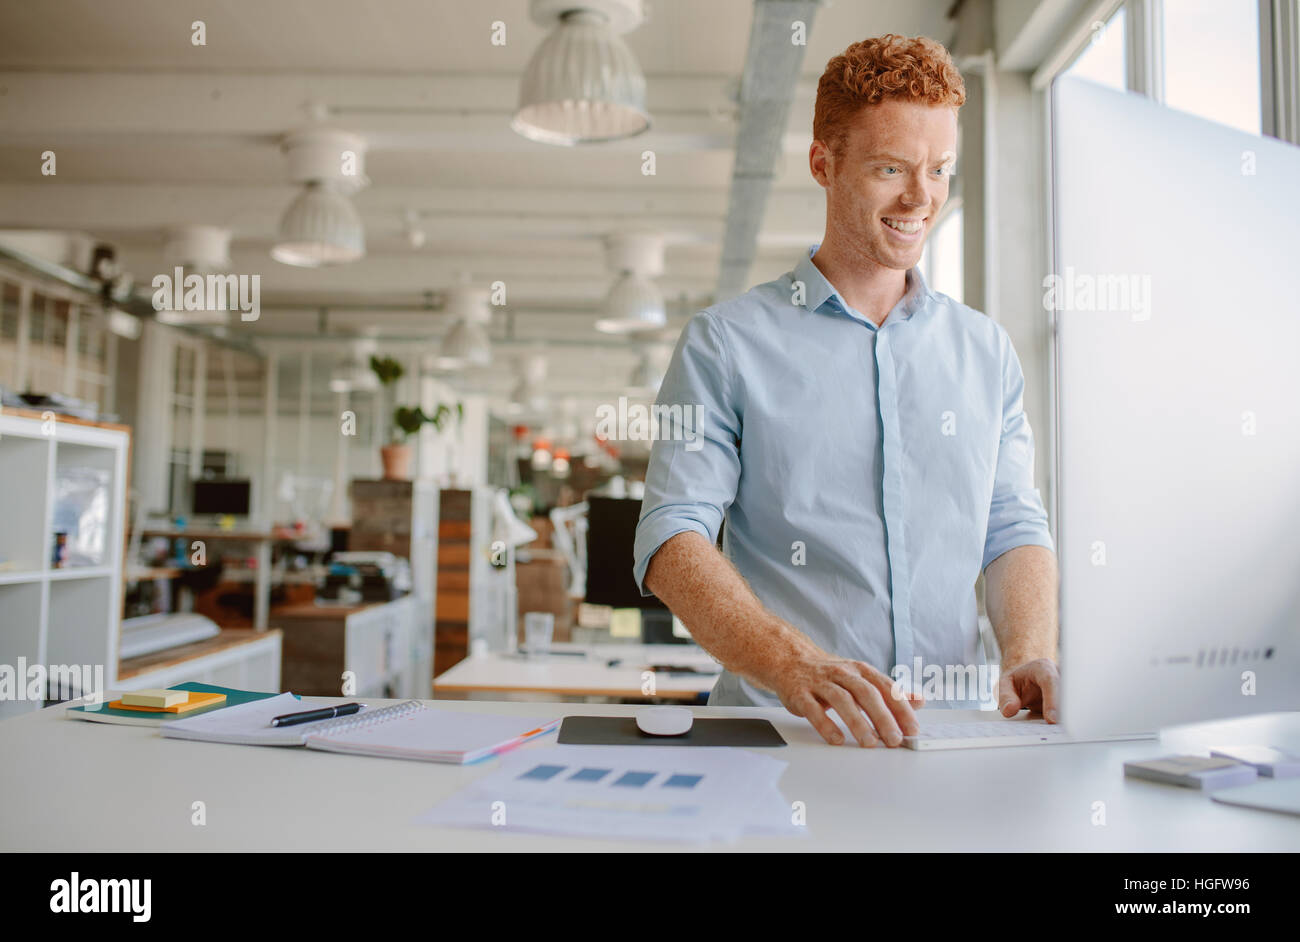 Shot of happy young man standing at his desk and working on computer. Businessman working in modern office. - Stock Image